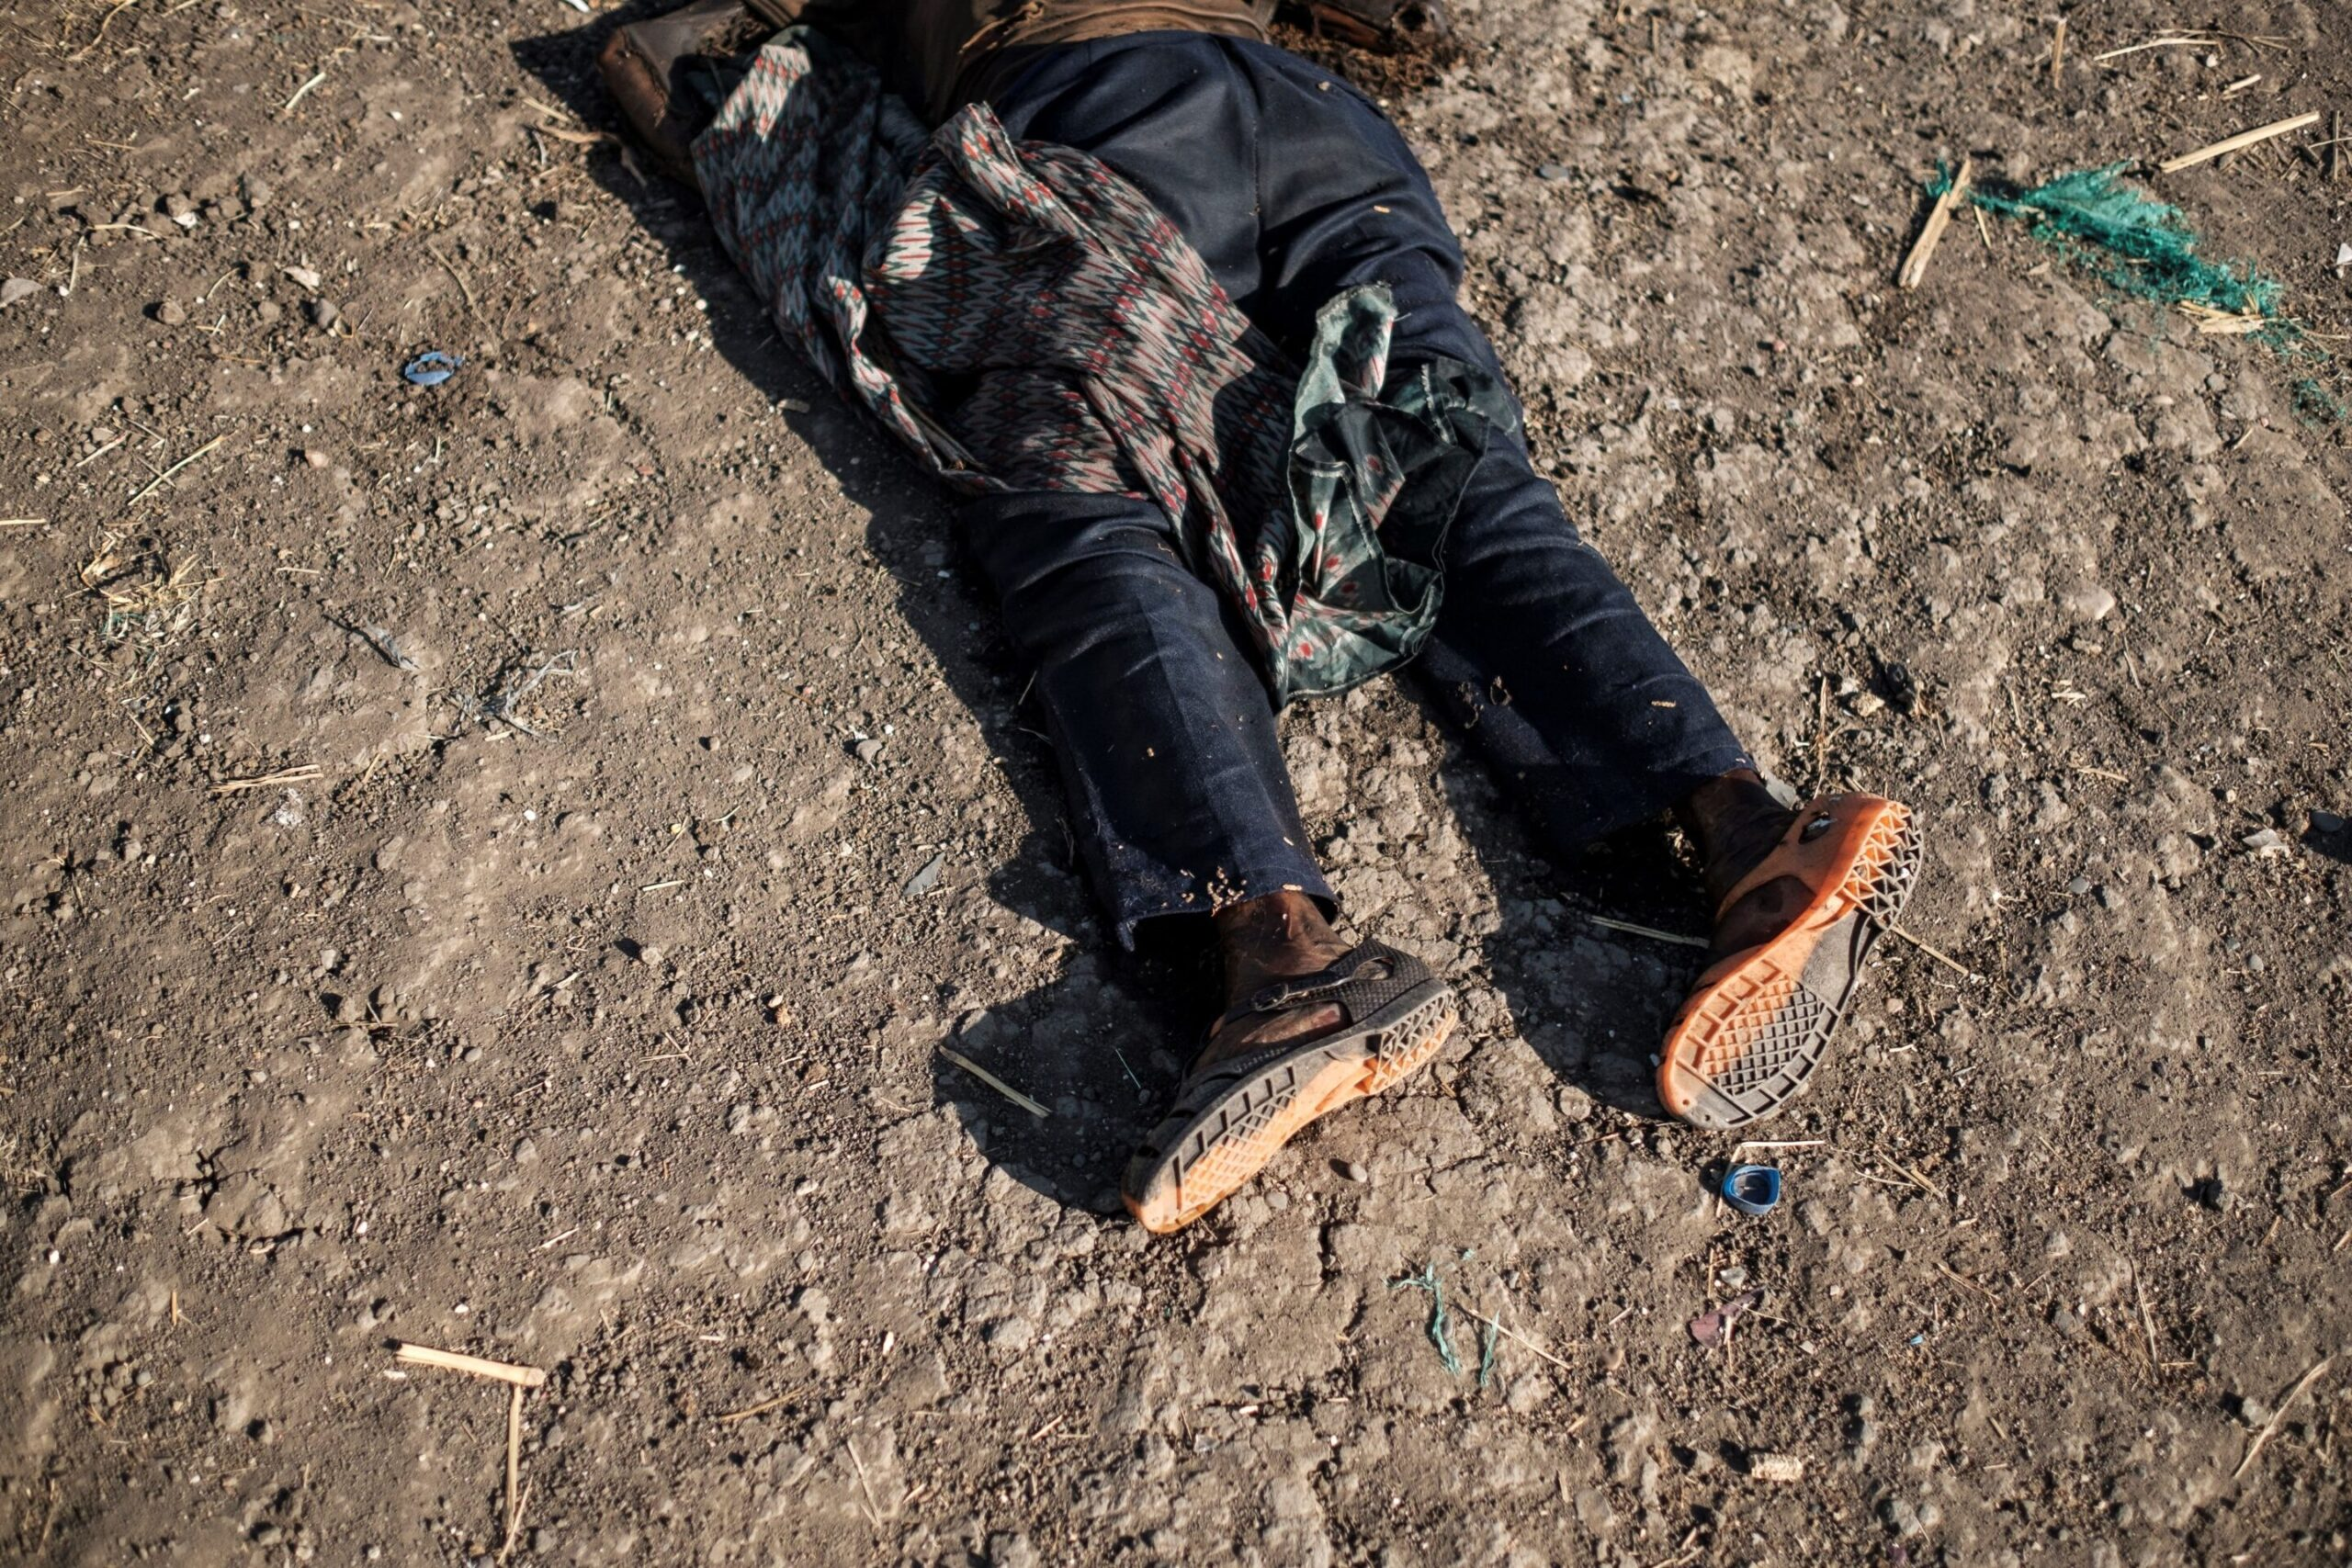 """EDITORS NOTE: Graphic content / This photograph taken on November 21, 2020, shows the body of an alleged victim of the November 9, 2020  massacre laying in a road in the outskirts of Mai Kadra, Ethiopia. - A local youth group aided by police and militia killed at least 600 people in a """"rampage"""" during the first week of fighting in Ethiopia's northern Tigray region, the national rights watchdog said on November 24, 2020. The massacre in the town of Mai-Kadra is the worst-known attack on civilians during Ethiopia's ongoing internal conflict pitting federal forces against leaders of Tigray's ruling party, the Tigray People's Liberation Front (TPLF). Some Tigrayan refugees from Mai-Kadra who have fled across the border to Sudan blame government forces for killings there. Amnesty International previously reported that """"scores, and likely hundreds, of people were stabbed or hacked to death"""" in the November 9 attack in Mai-Kadra. But November 24, 2020's report from the Ethiopian Human Rights Commission (EHRC) provides a more detailed account, accusing the Tigrayan youth group known as """"Samri"""" of targeting non-Tigrayan seasonal labourers working on sesame and sorghum farms in the area. The EHRC is a government-affiliated but independent body whose chief commissioner, Daniel Bekele, was appointed by Prime Minister Abiy Ahmed. (Photo by EDUARDO SOTERAS / AFP) (Photo by EDUARDO SOTERAS/AFP via Getty Images)"""